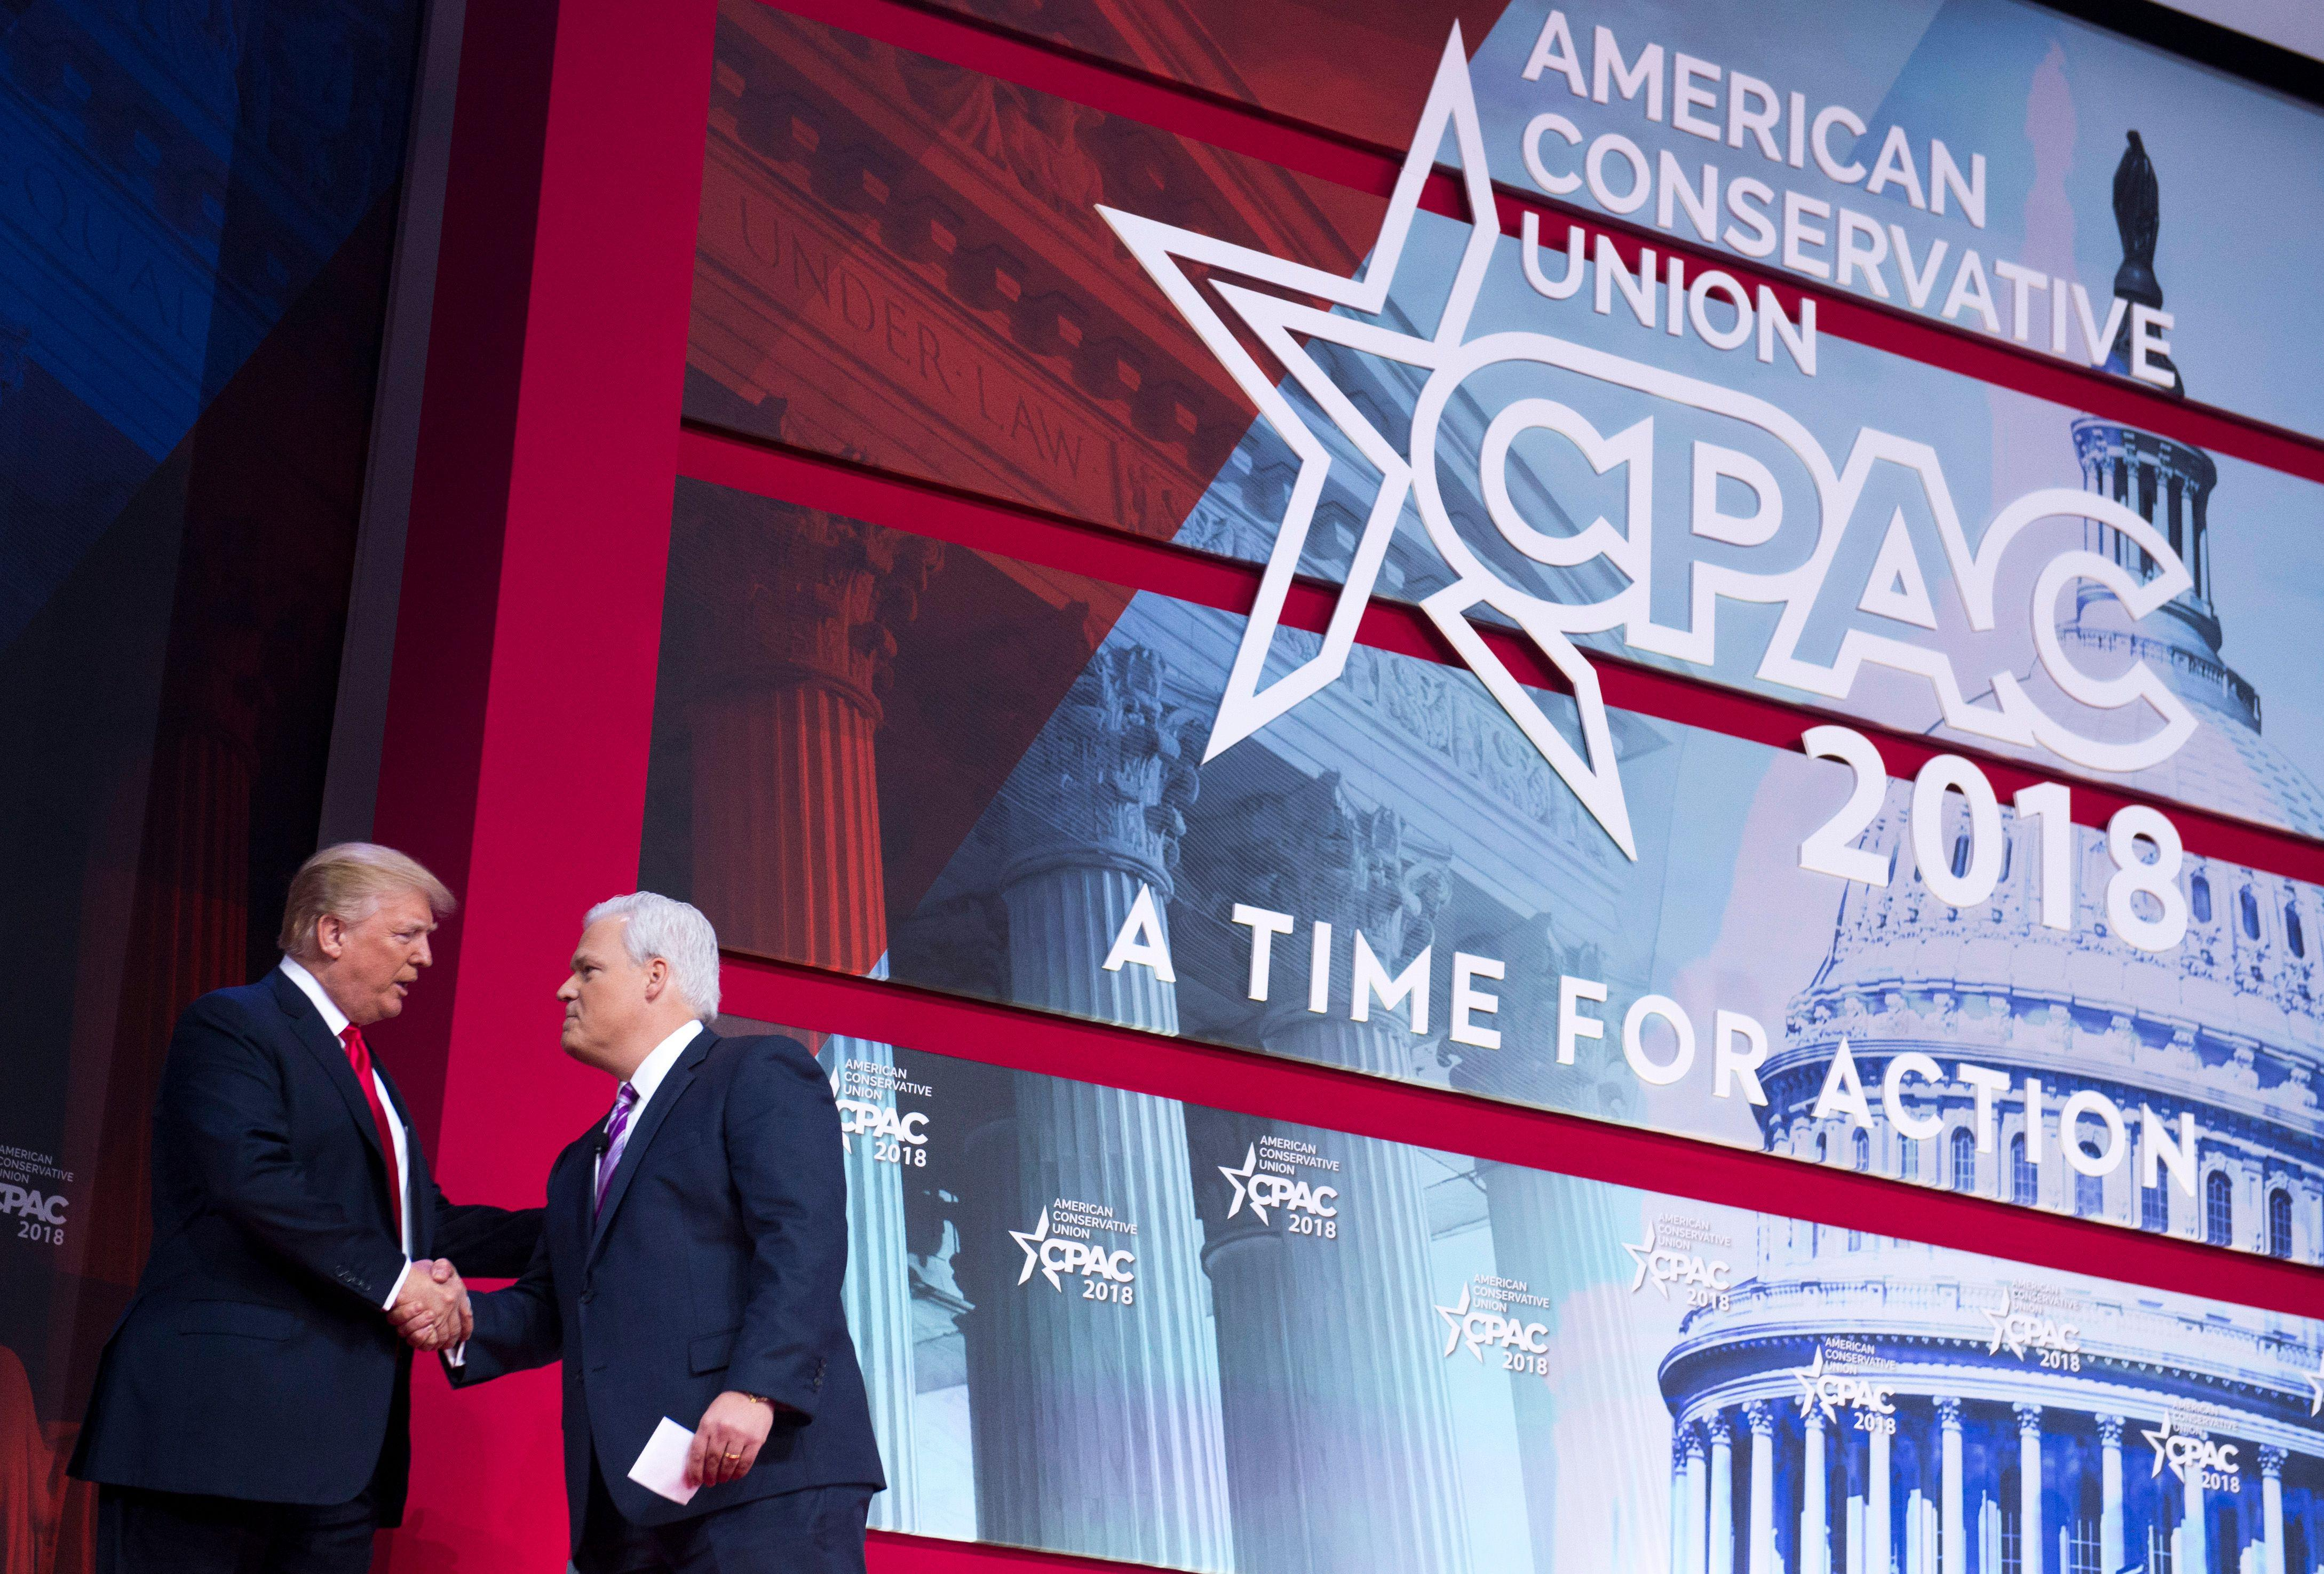 US President Donald Trump shakes hands with Matt Schlapp, chairman of the American Conservative Union, during the 2018 Conservative Political Action Conference (CPAC) at National Harbor in Oxon Hill, Maryland, February 23, 2018. / AFP PHOTO / SAUL LOEB        (Photo credit should read SAUL LOEB/AFP/Getty Images)